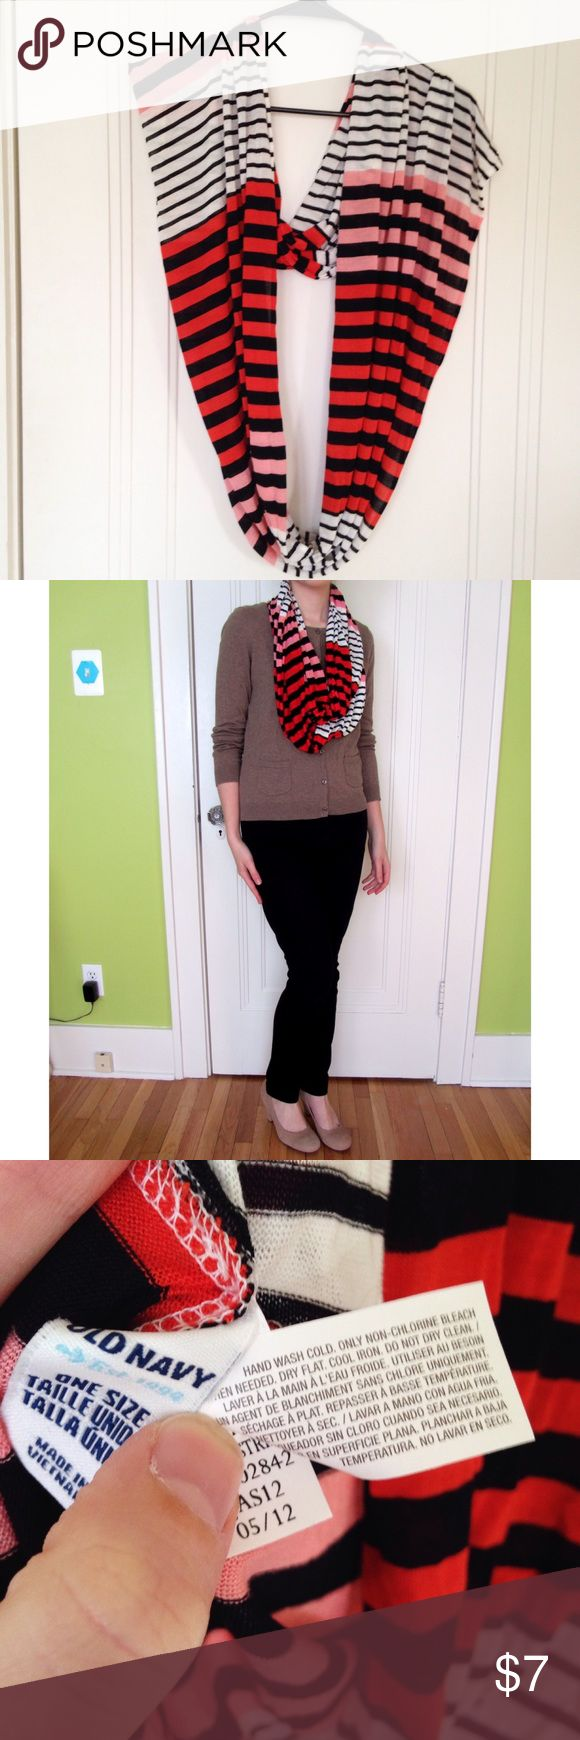 Old Navy Lightweight Striped Infinity Scarf Lightweight infinity scarf from old navy in a stylish combo of red, pink, black and white stripes. 100% rayon, gently used, like new. Old Navy Accessories Scarves & Wraps